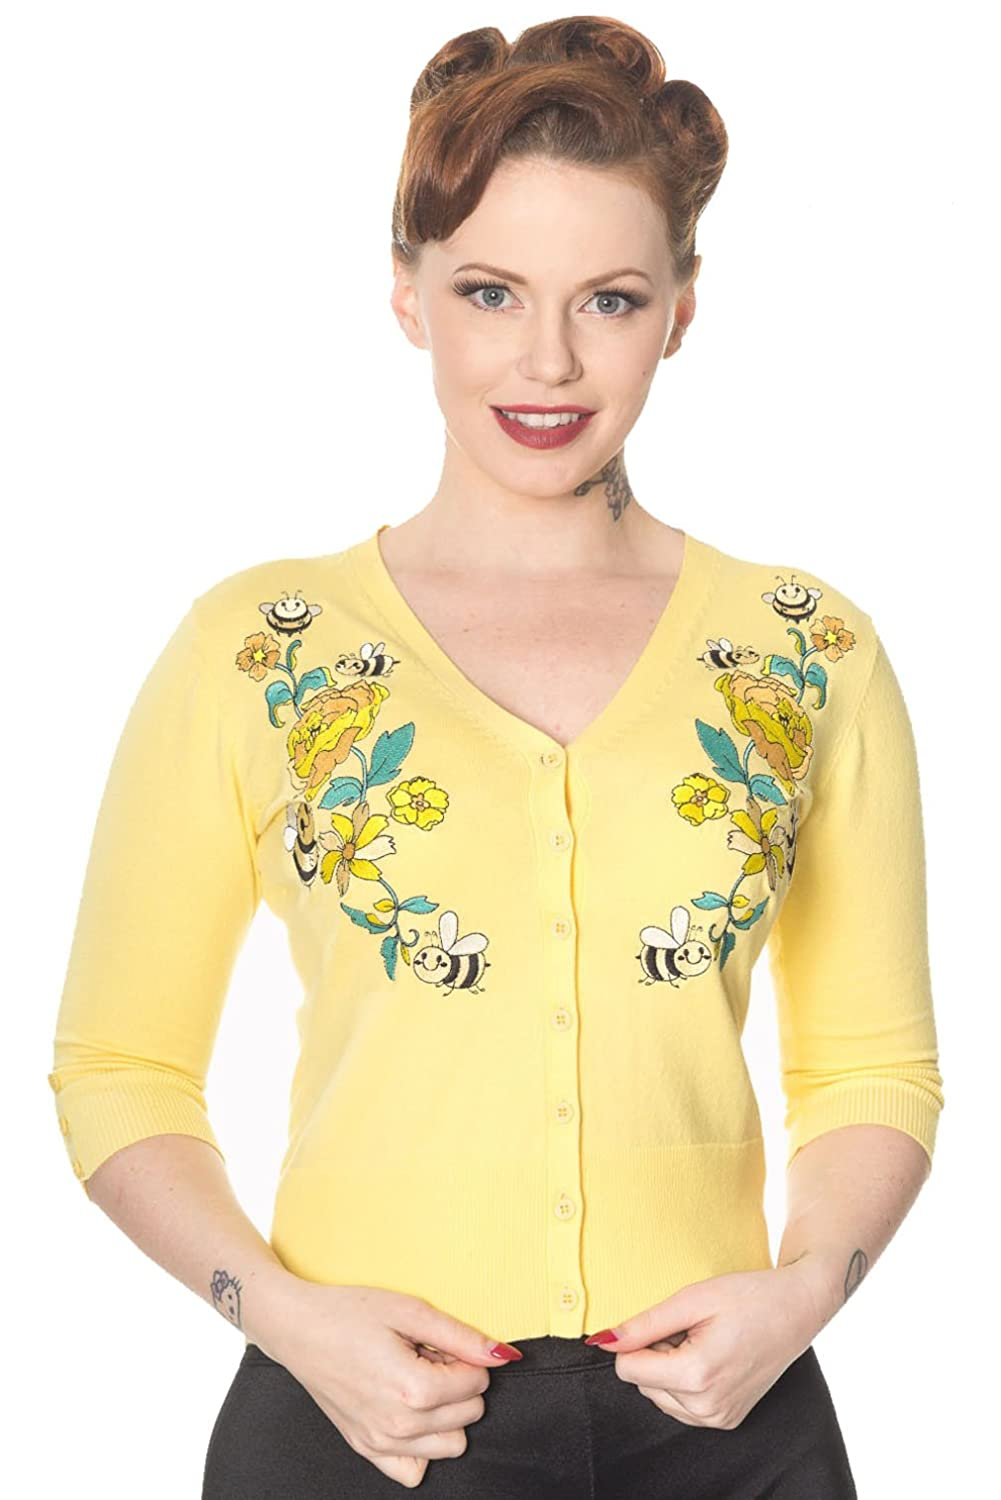 1950s Sweaters, 50s Cardigans, Twin Sweater Sets Banned - BUMBLE BEE FLOWER - Embroidered Cardigan $39.22 AT vintagedancer.com